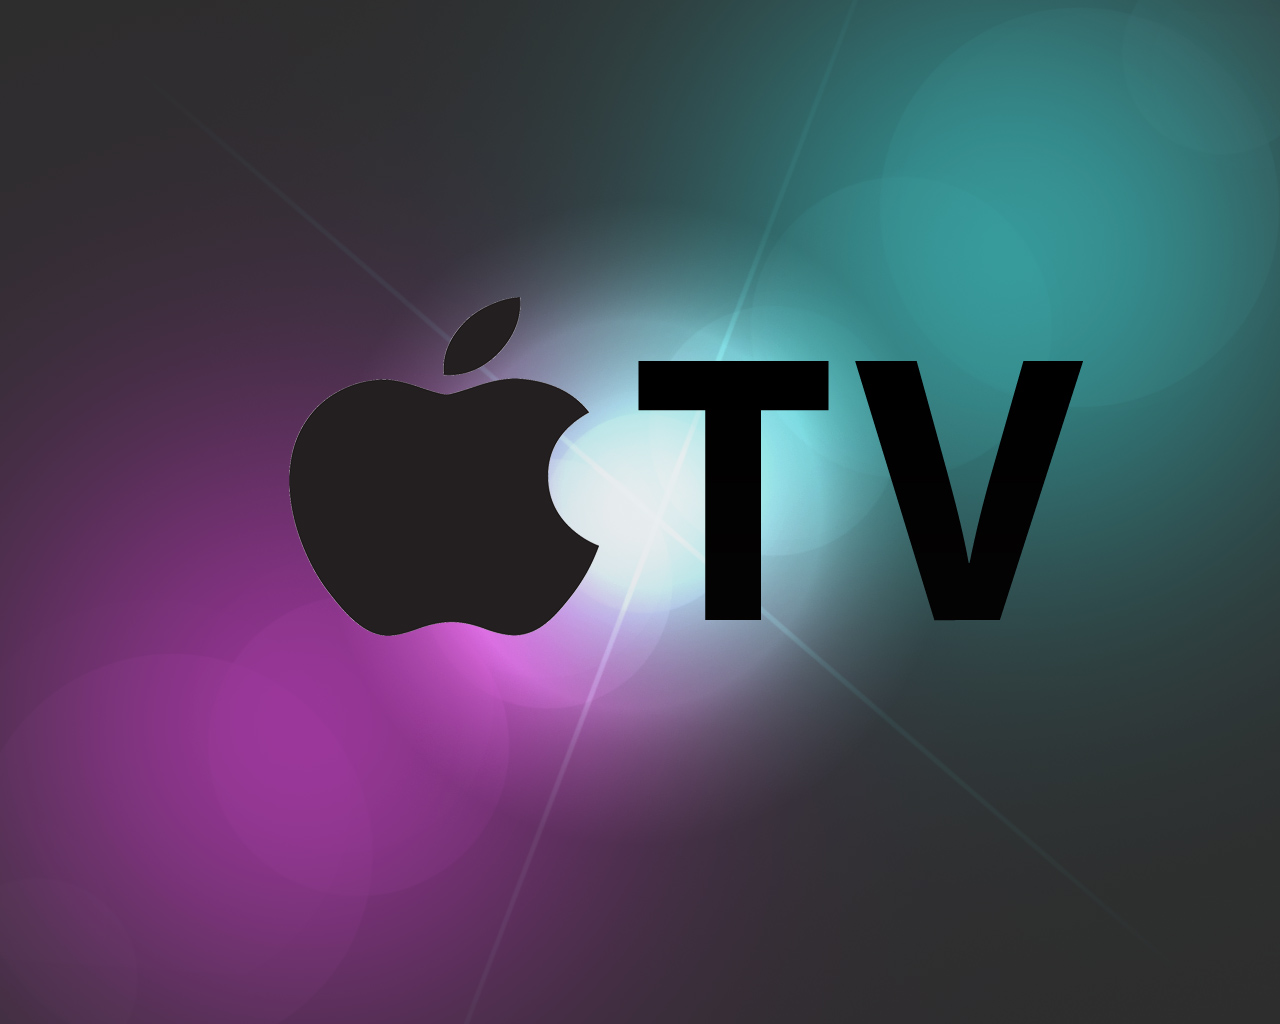 Apple tv logo Wallpaper